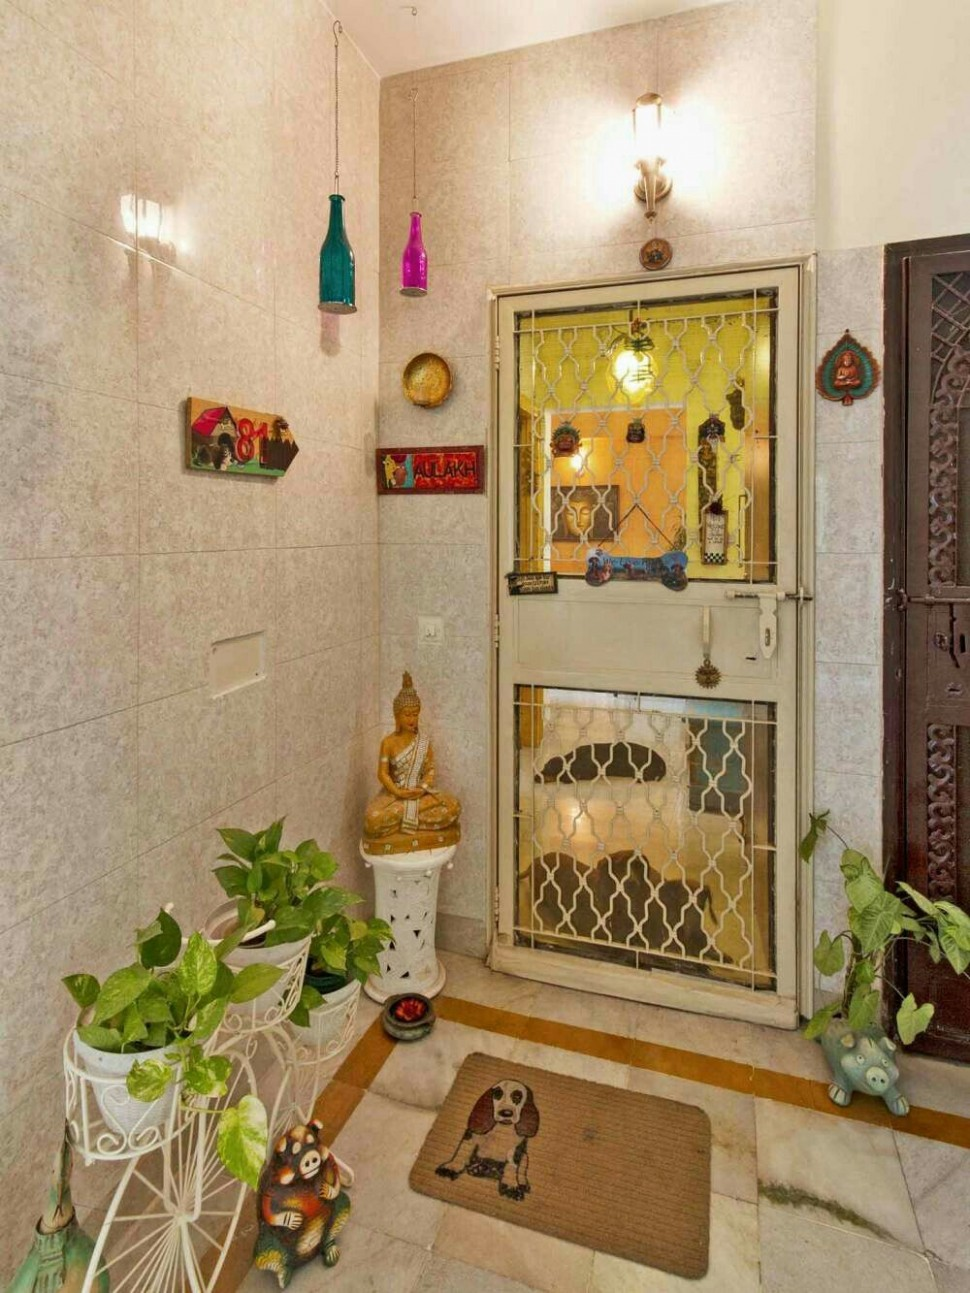 Small cutesy entrance to an apartment  Home entrance decor  - Apartment Entrance Decor Ideas